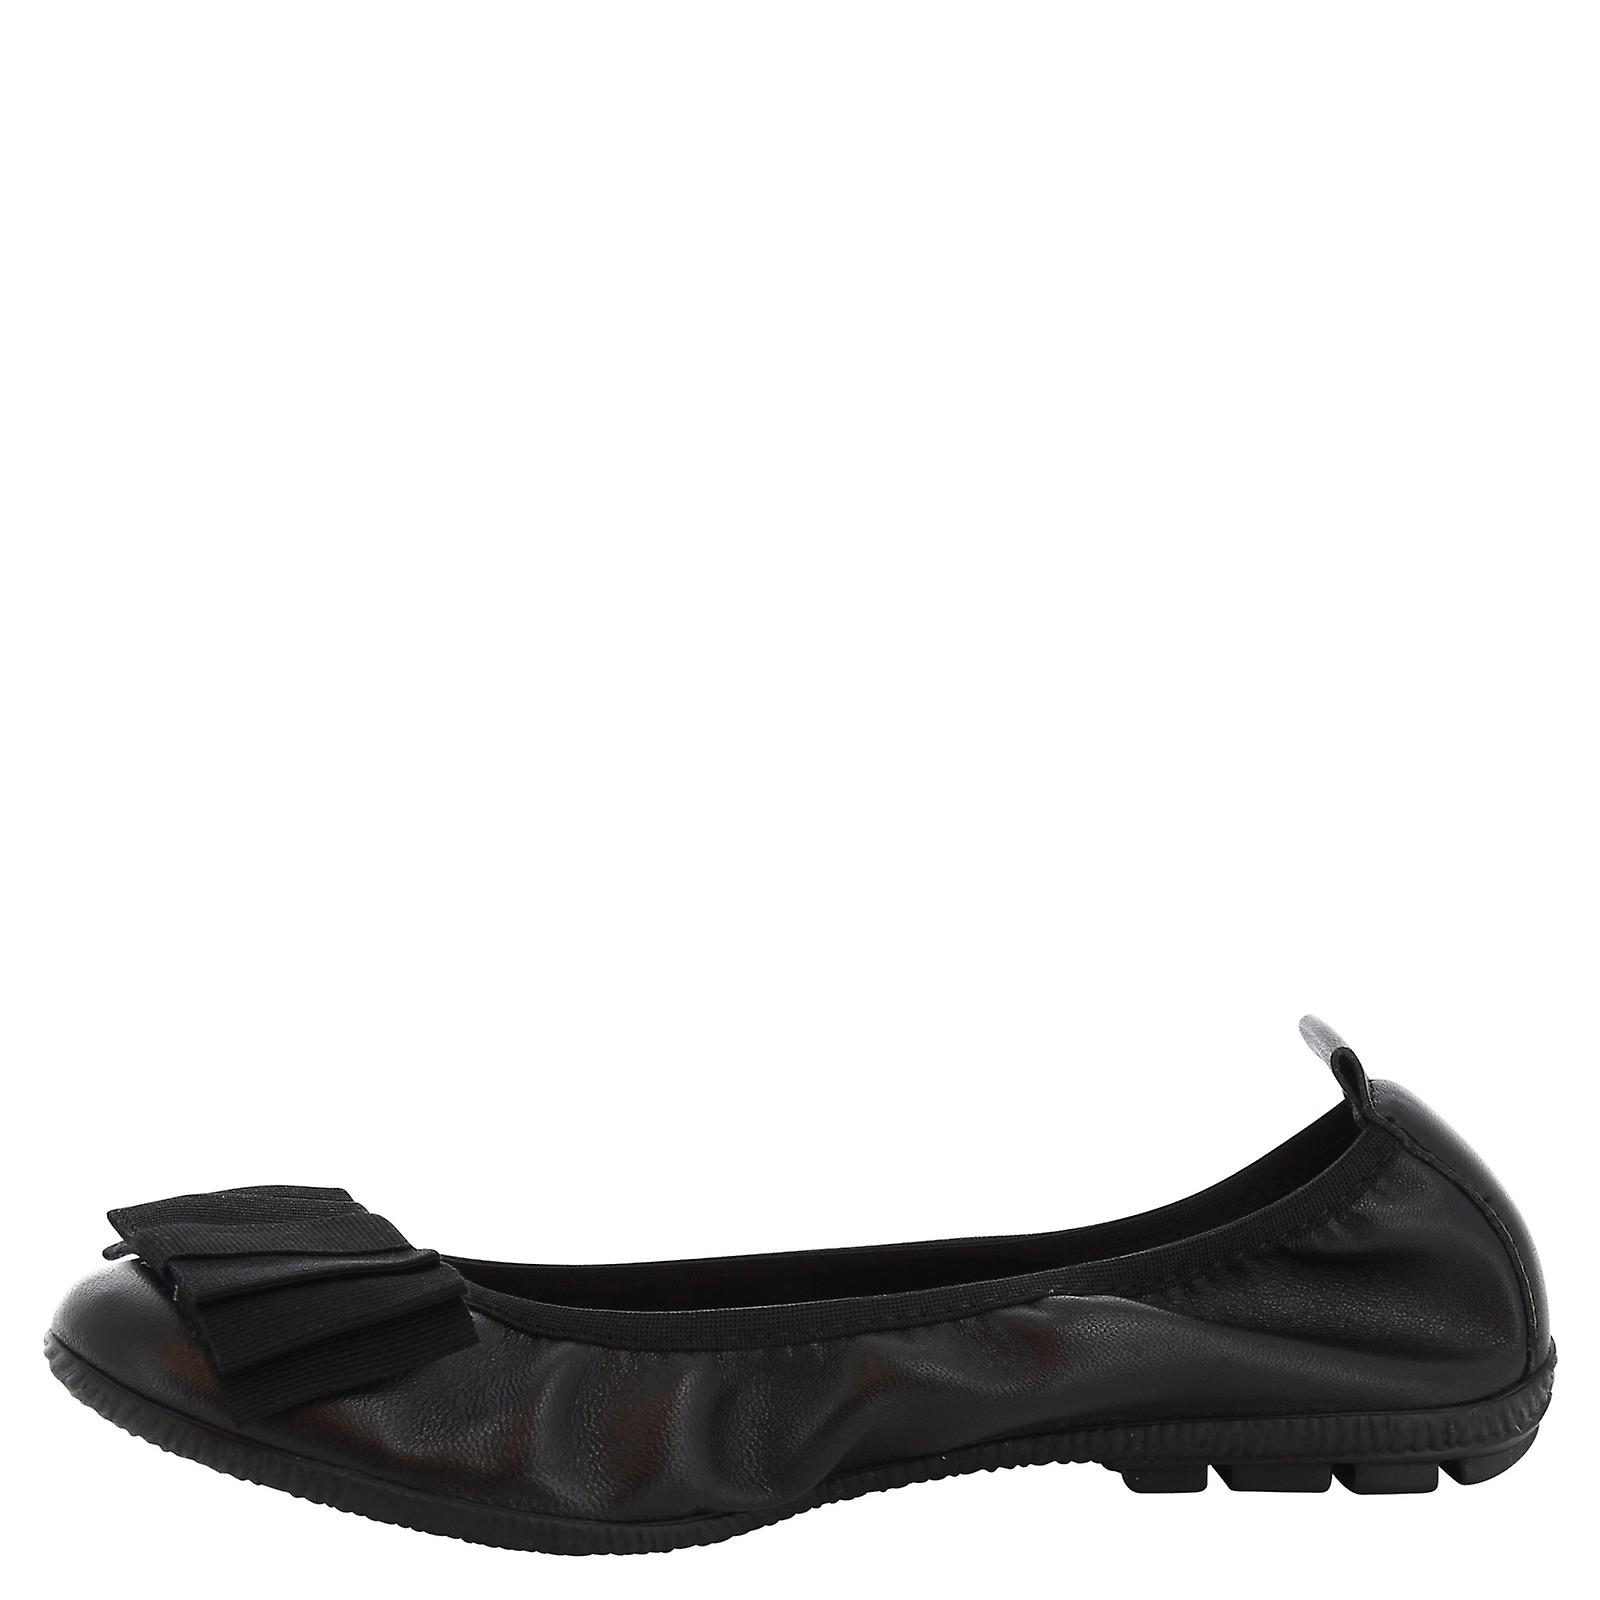 Leonardo Shoes Woman's handmade ballerinas in black leather